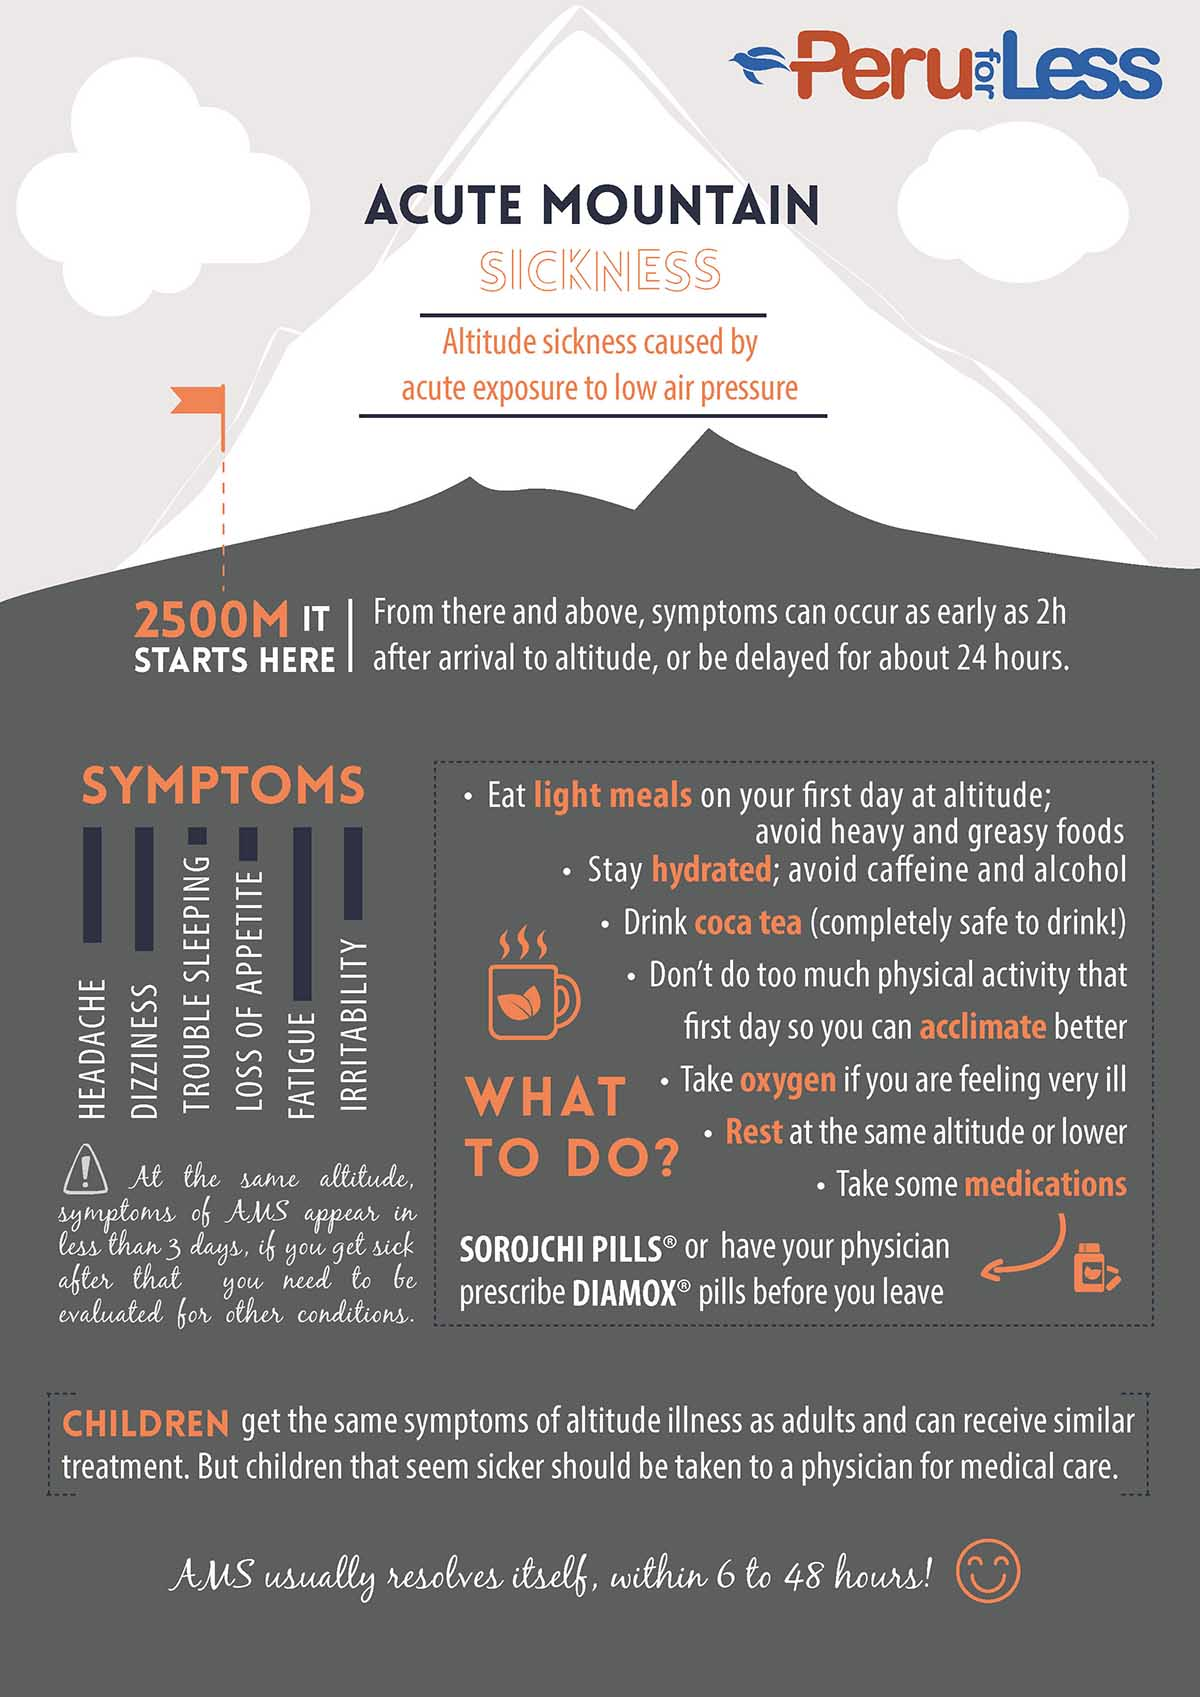 Altitude sickness symptoms include headache and fatigue. Eat light meals and stay hydrated.